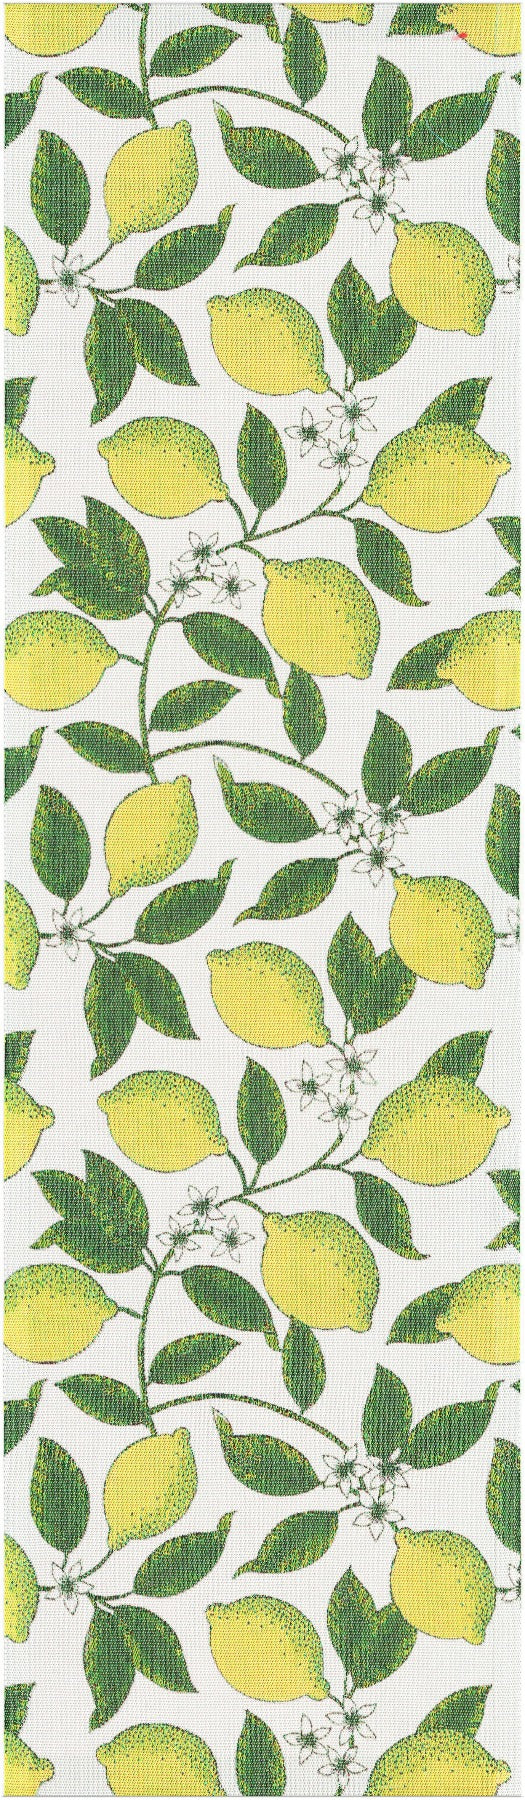 Ekelund Table Runner Citron